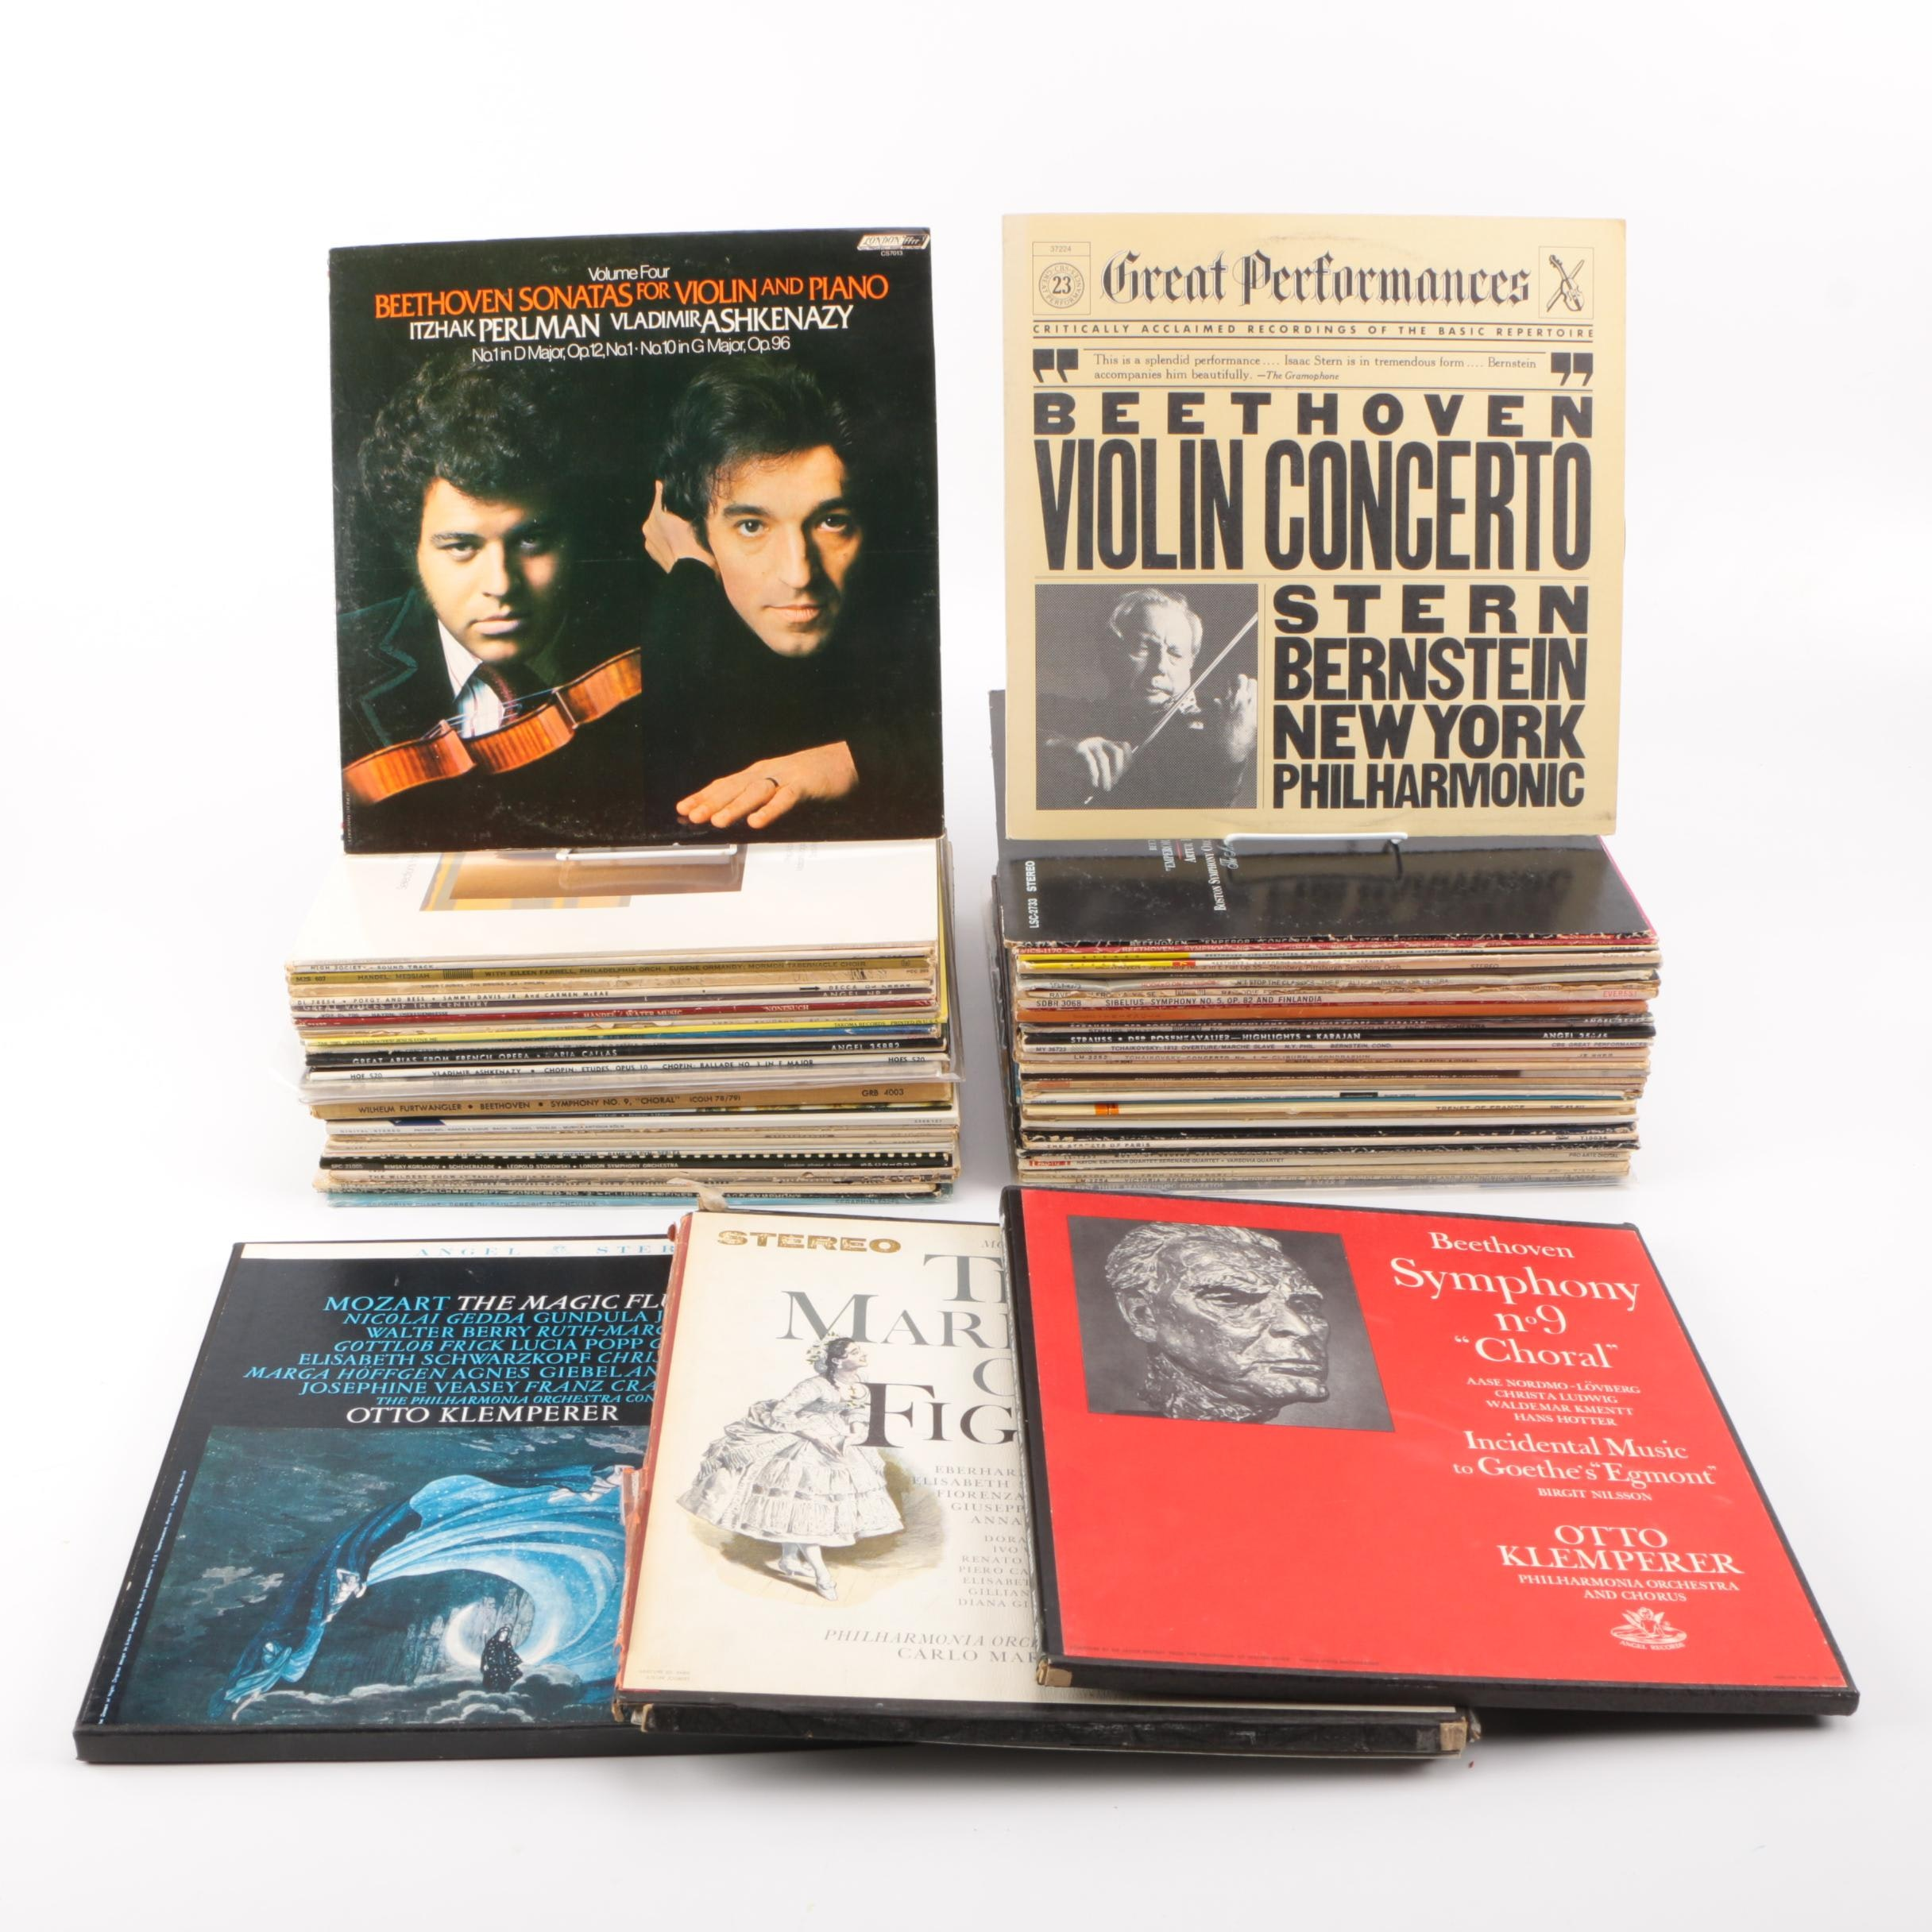 Vintage Collection of Classical Records Including the New York Philharmonic